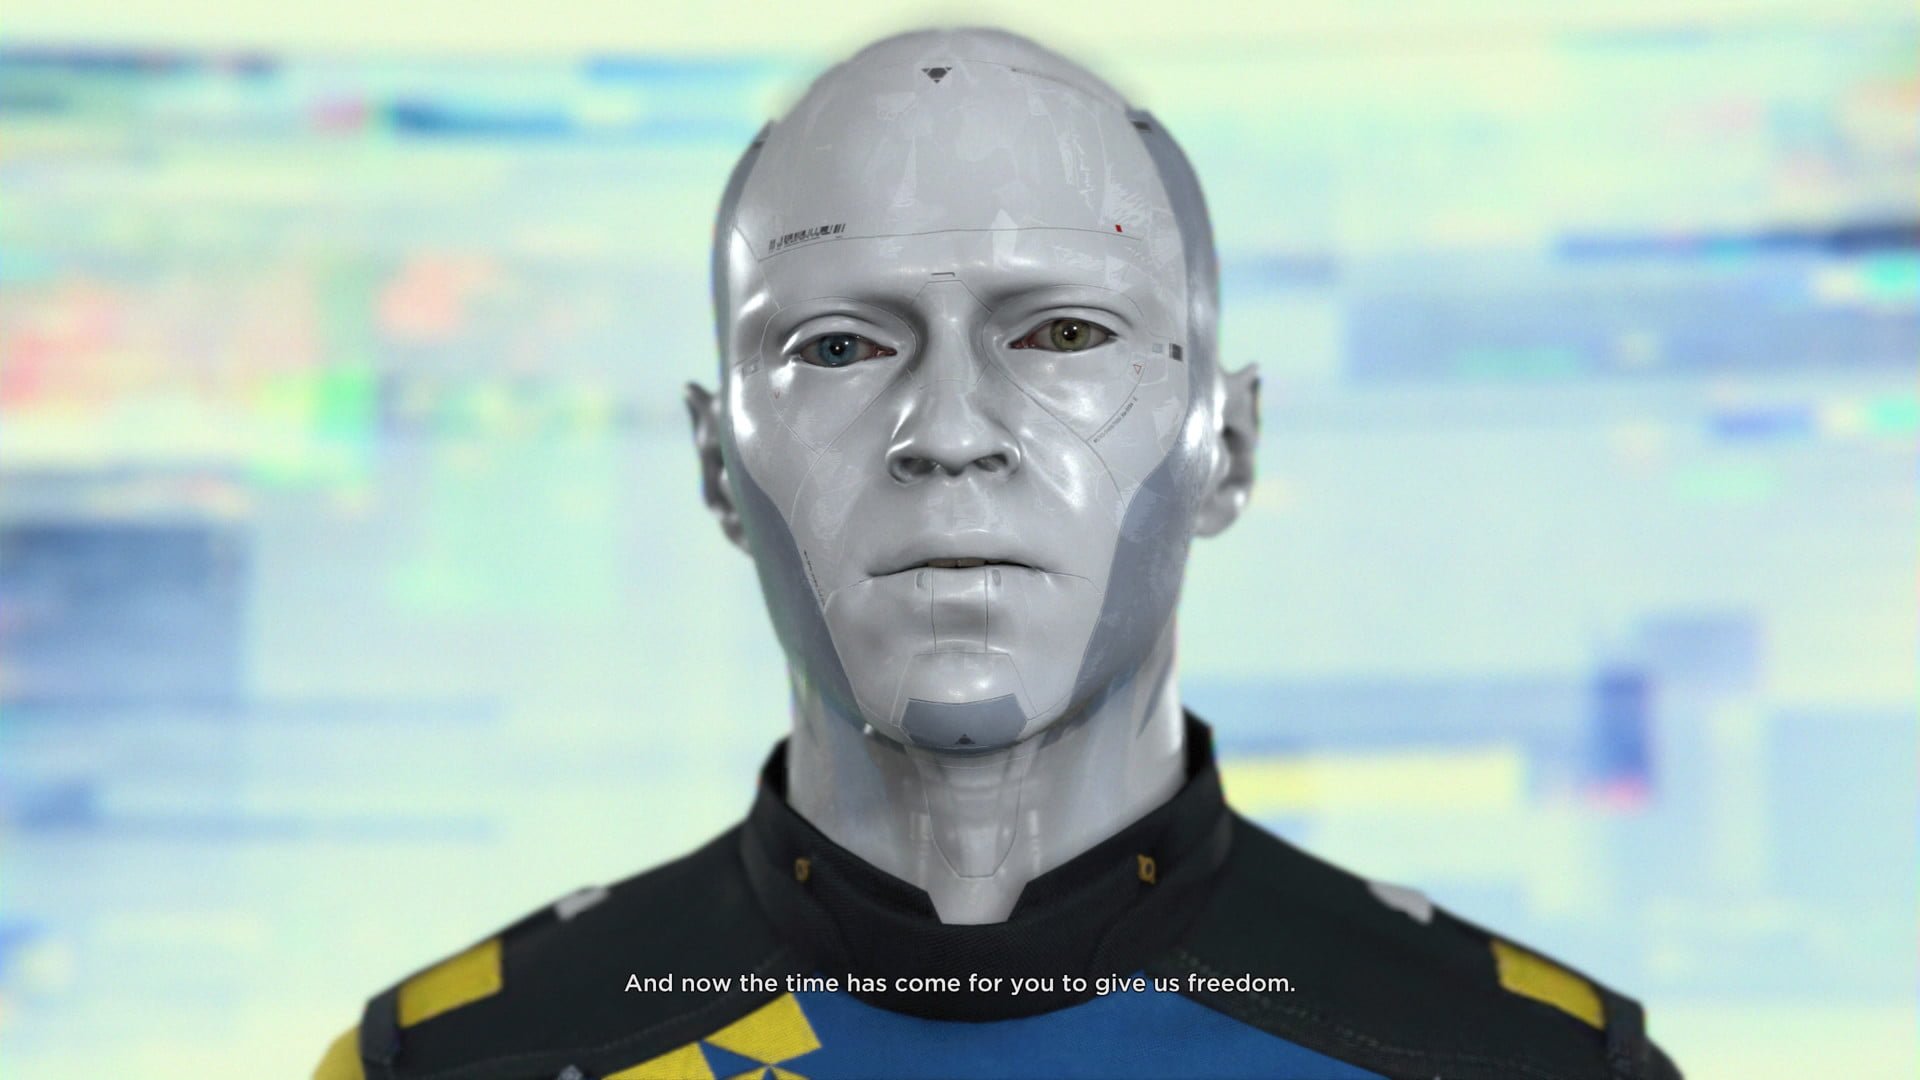 becoming human Latest news, info and tutorials on artificial intelligence, machine learning, deep learning, big data and what it means for humanity.